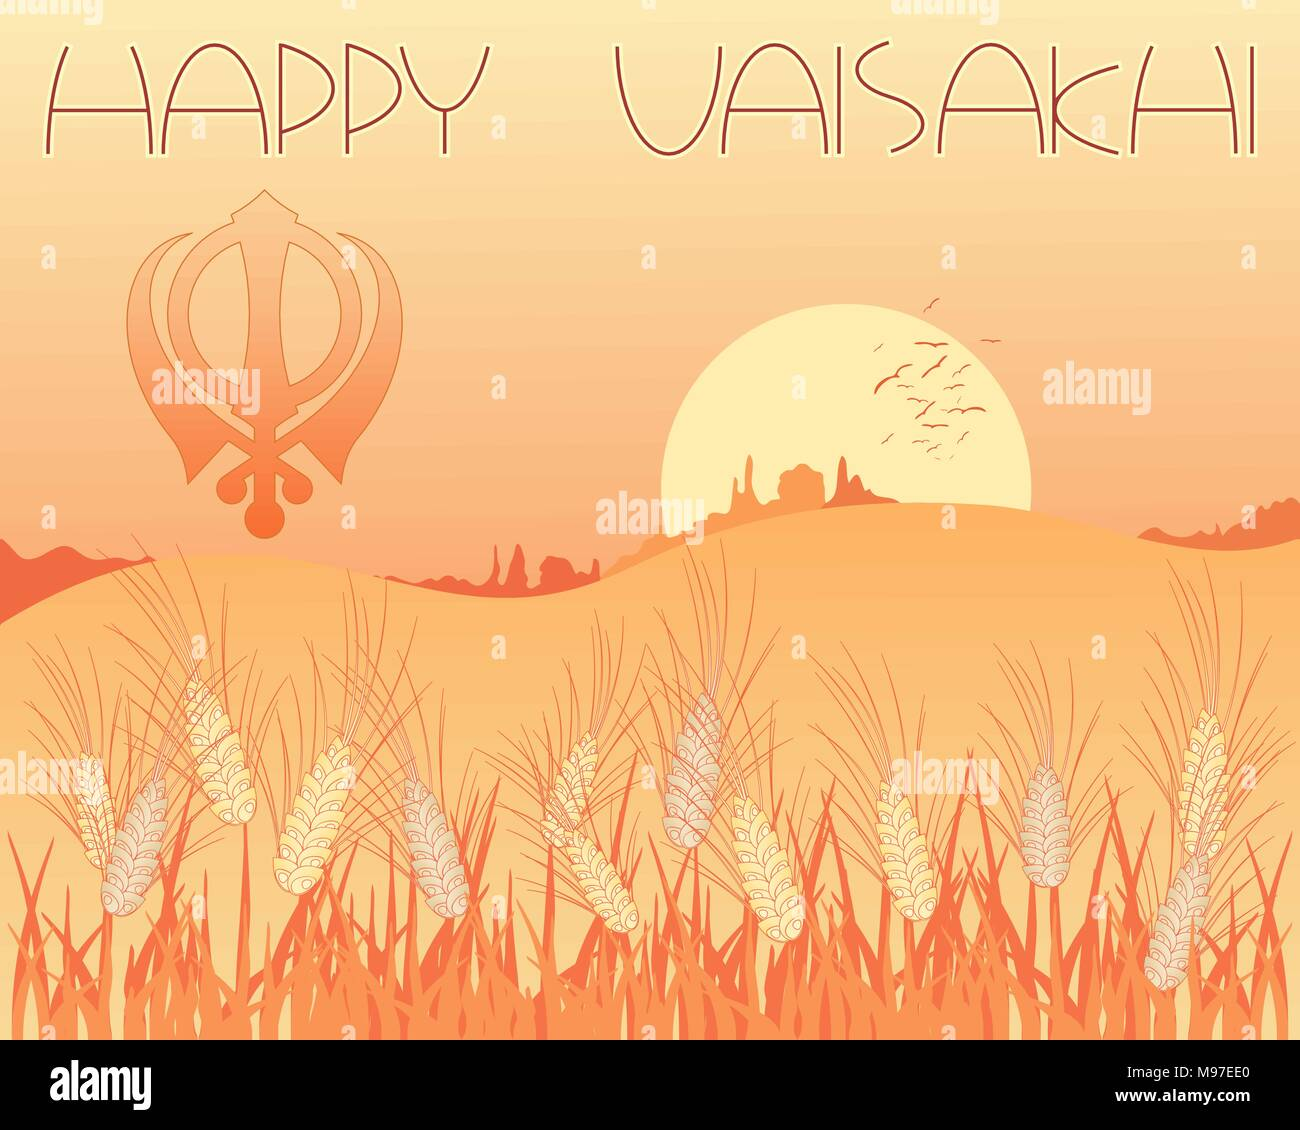 an illustration of a vaisakhi greeting card with harvest scene and sikh symbol at sunset - Stock Vector